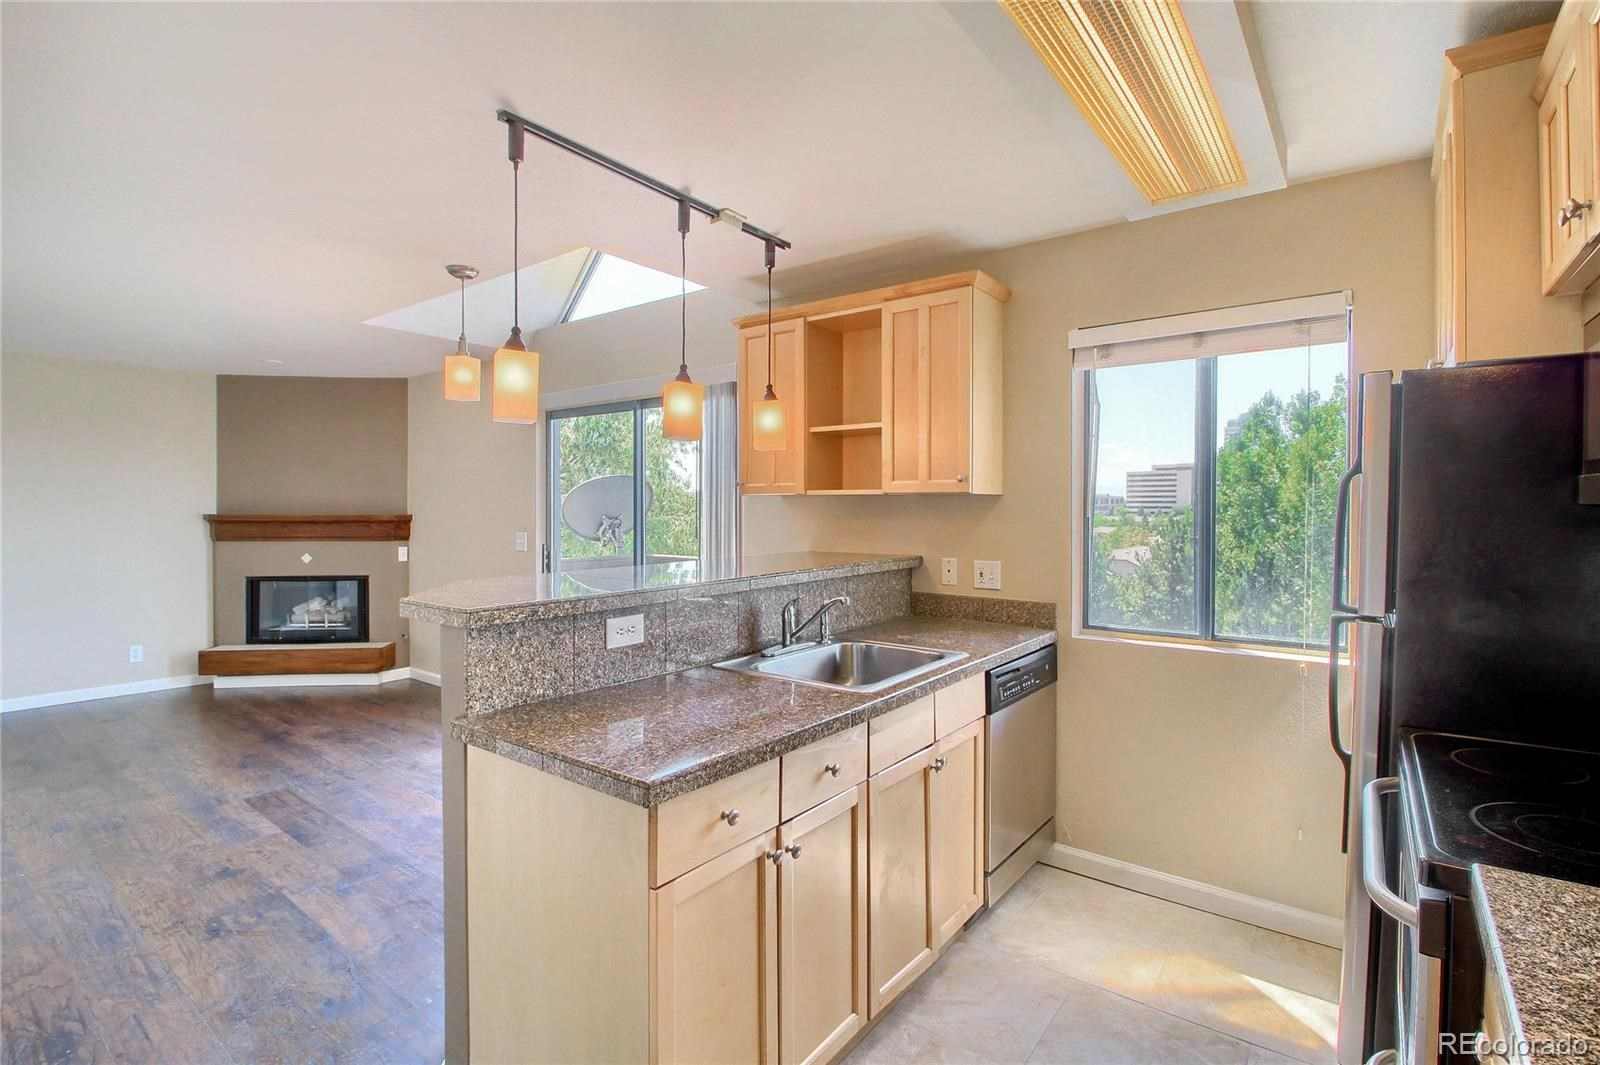 MLS# 5763768 - 9 - 6380 S Boston Street #303, Greenwood Village, CO 80111